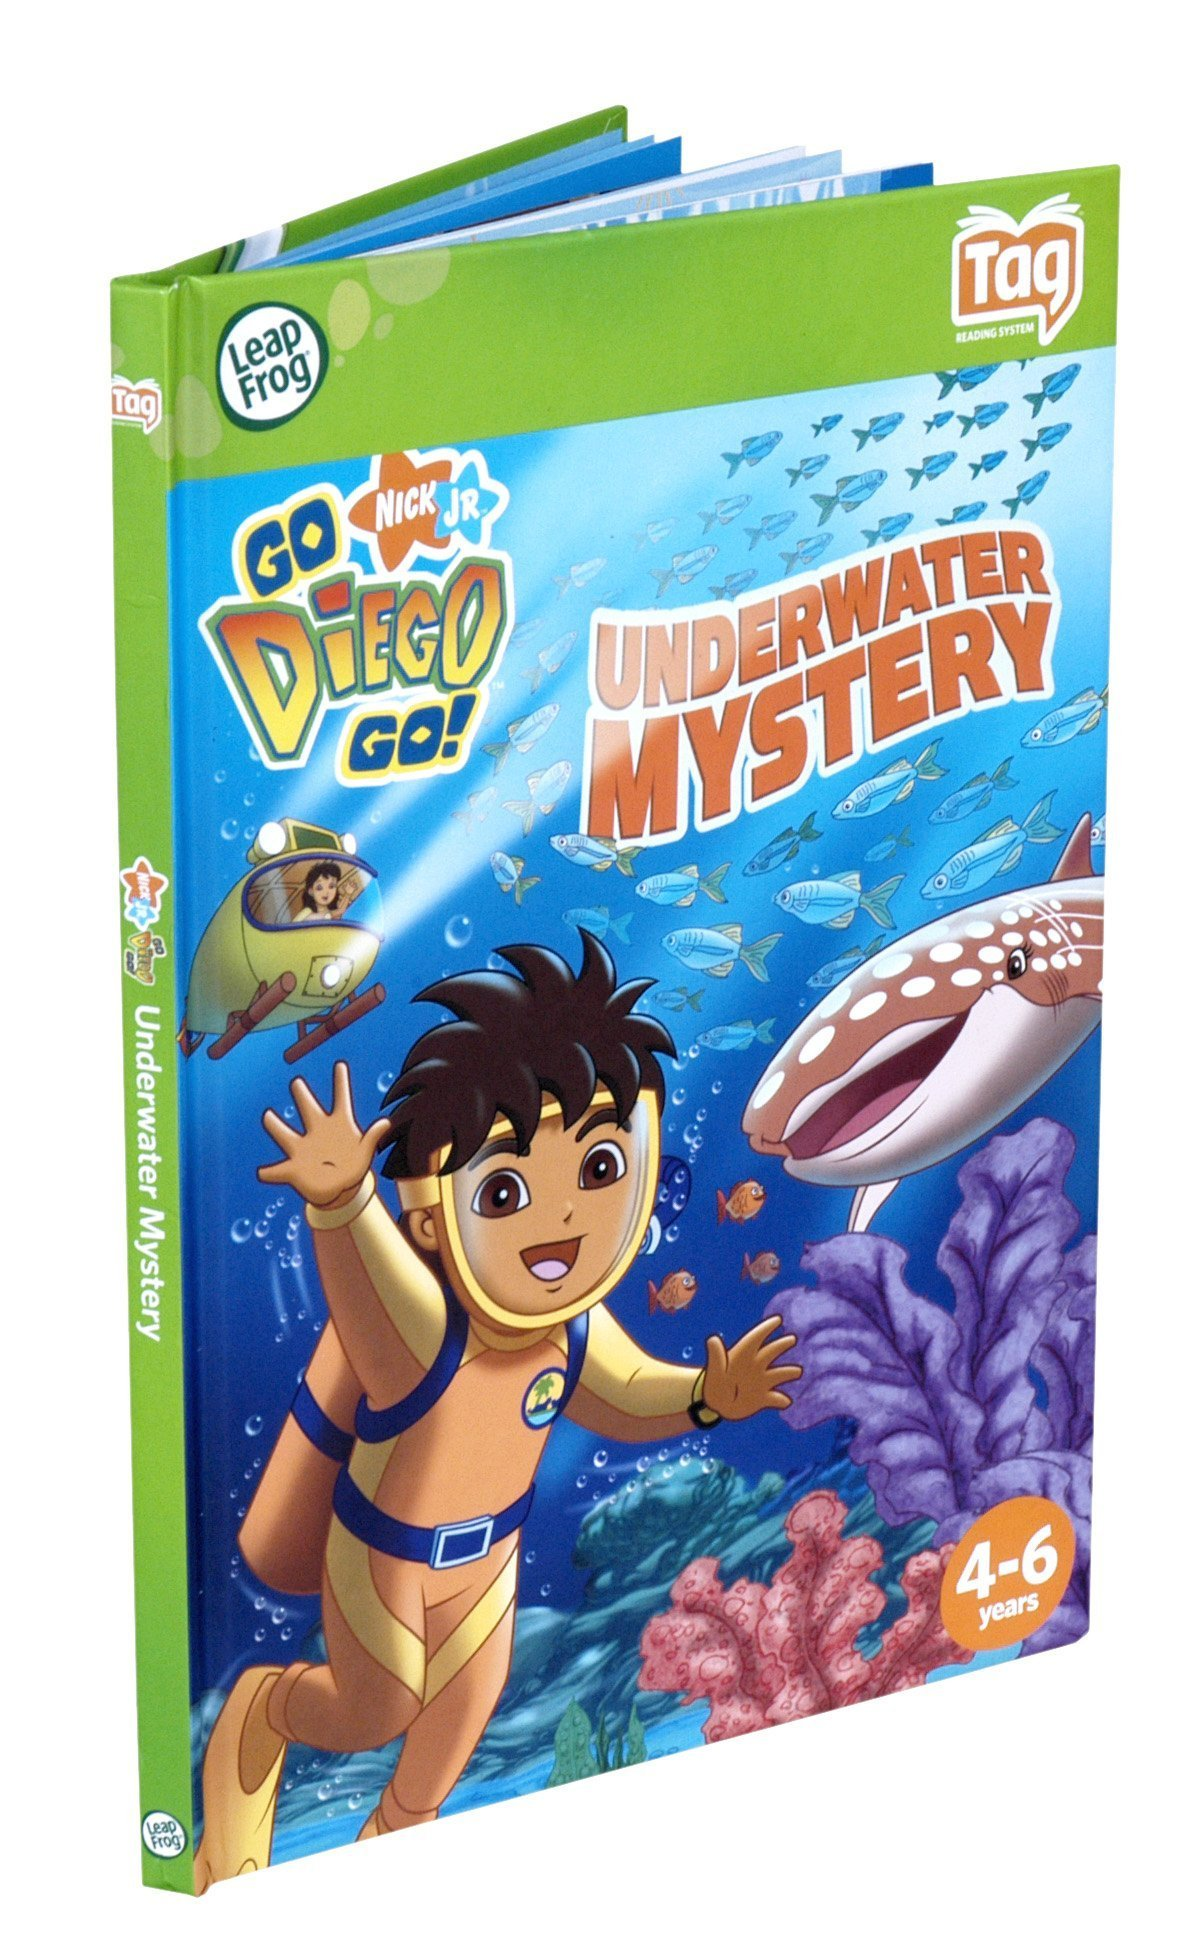 Leapfrog Tag Activity Storybook Go Diego Go!: Underwater Mystery by LeapFrog (Image #1)